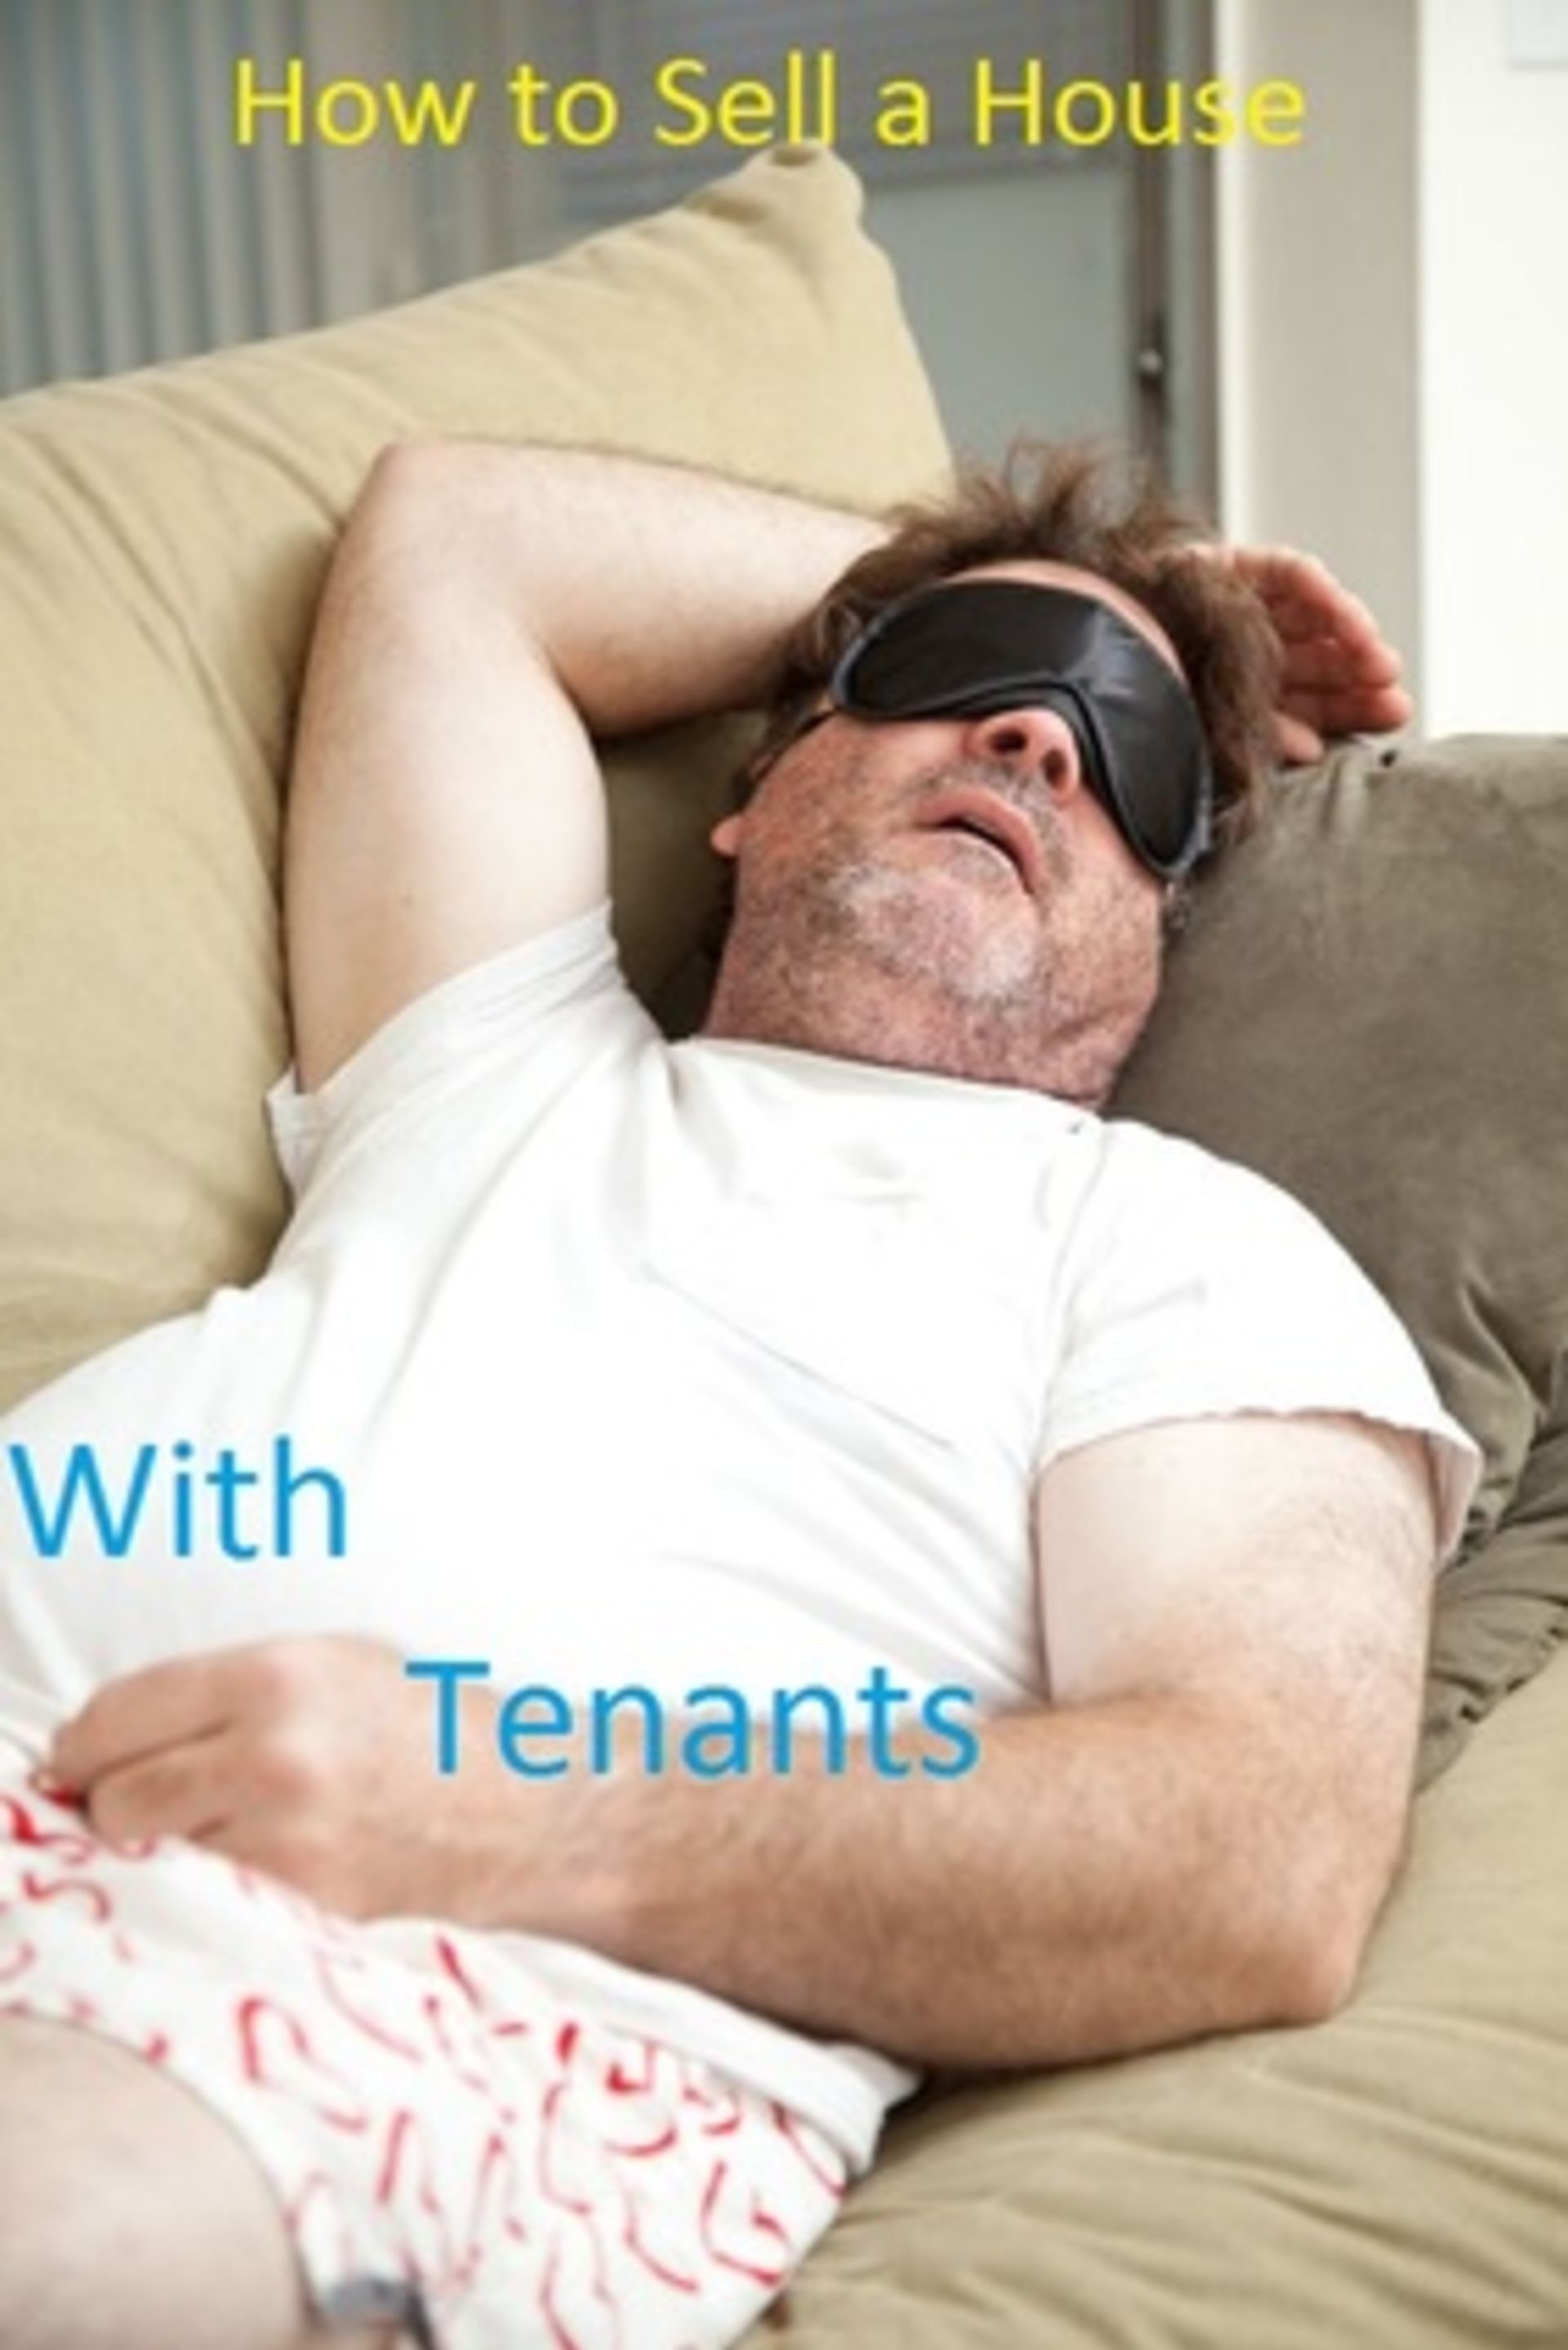 How to Sell a House with Tenants